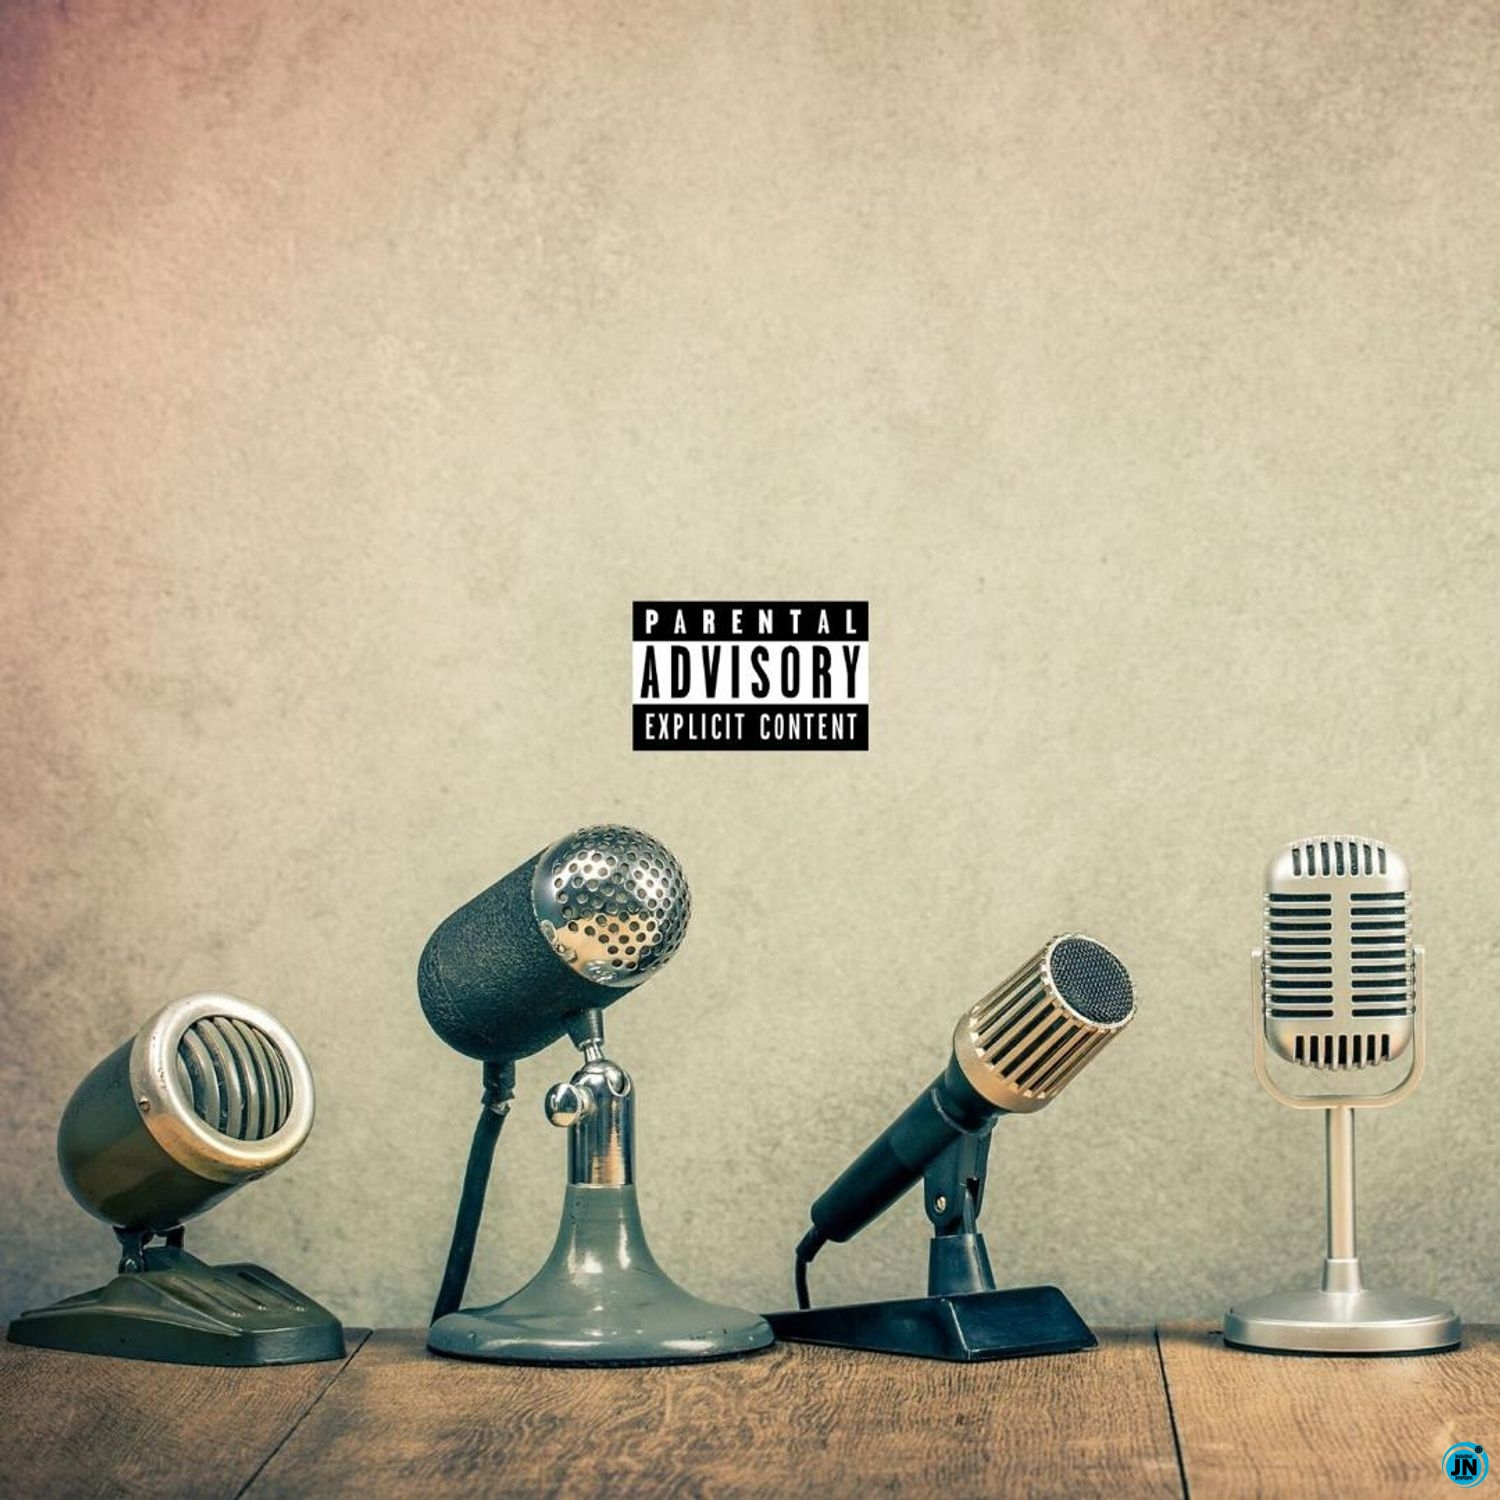 M.I Abaga - Tone of the Conversation Ft. A-Q